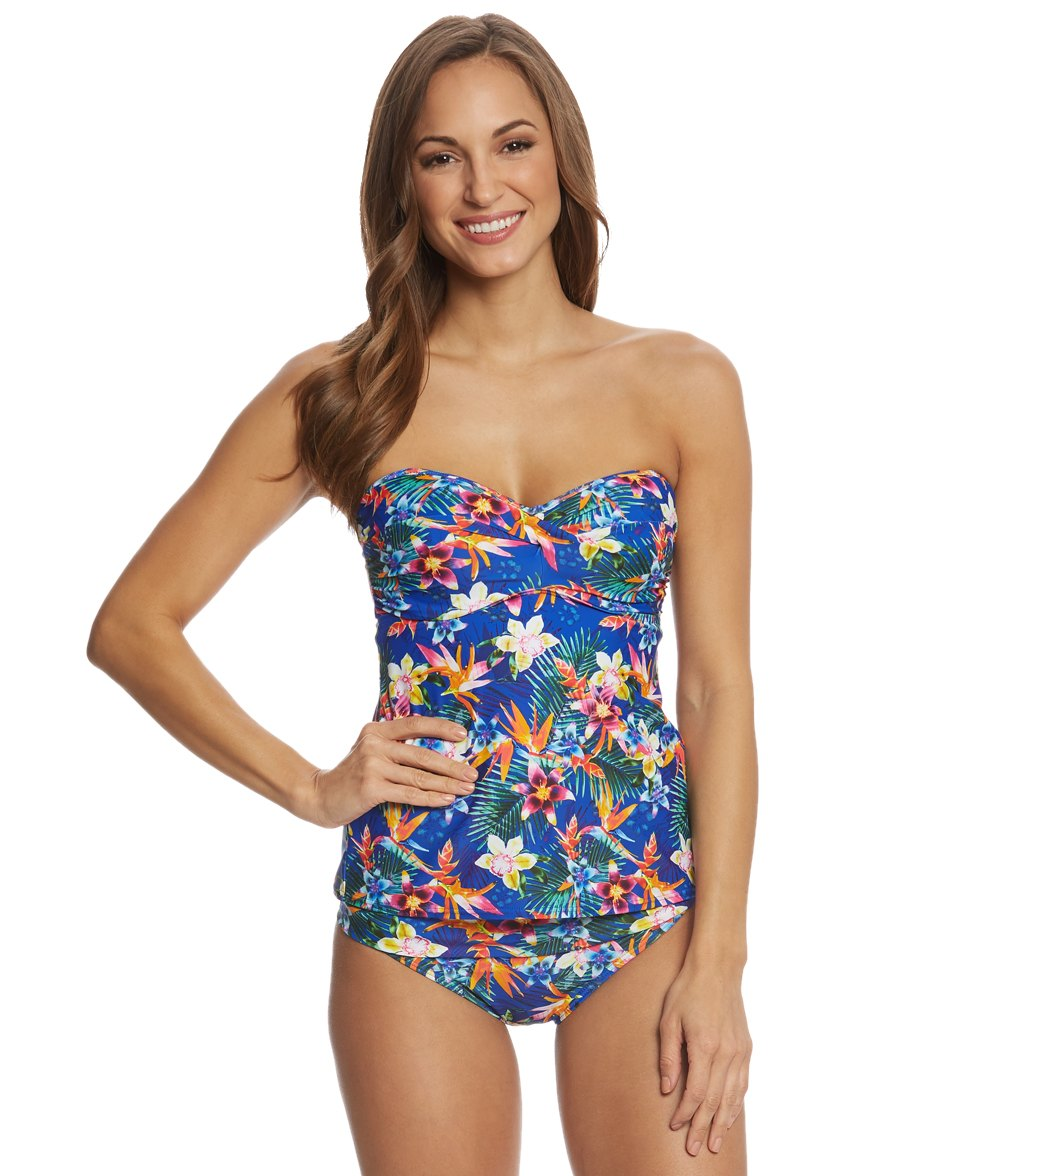 dress style bathing suits in bra